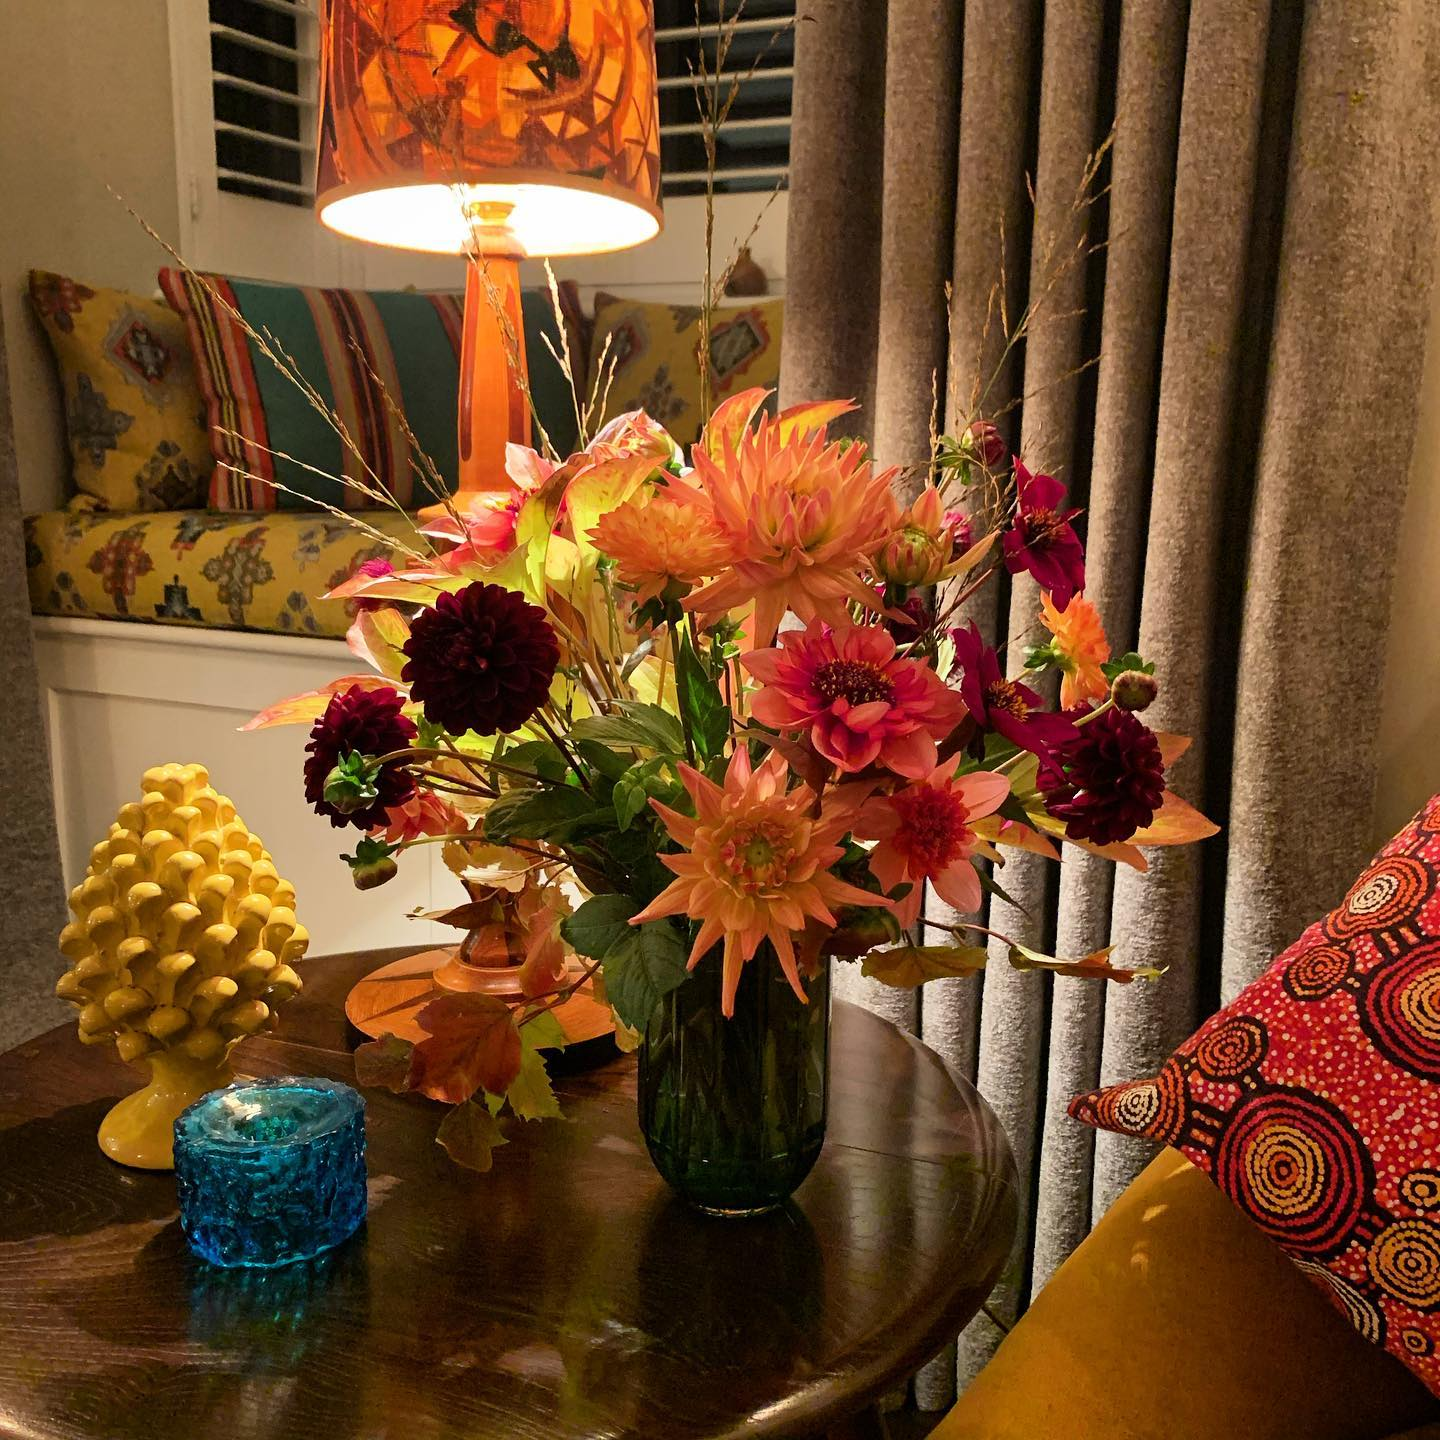 Homegrown Autumn in a vase